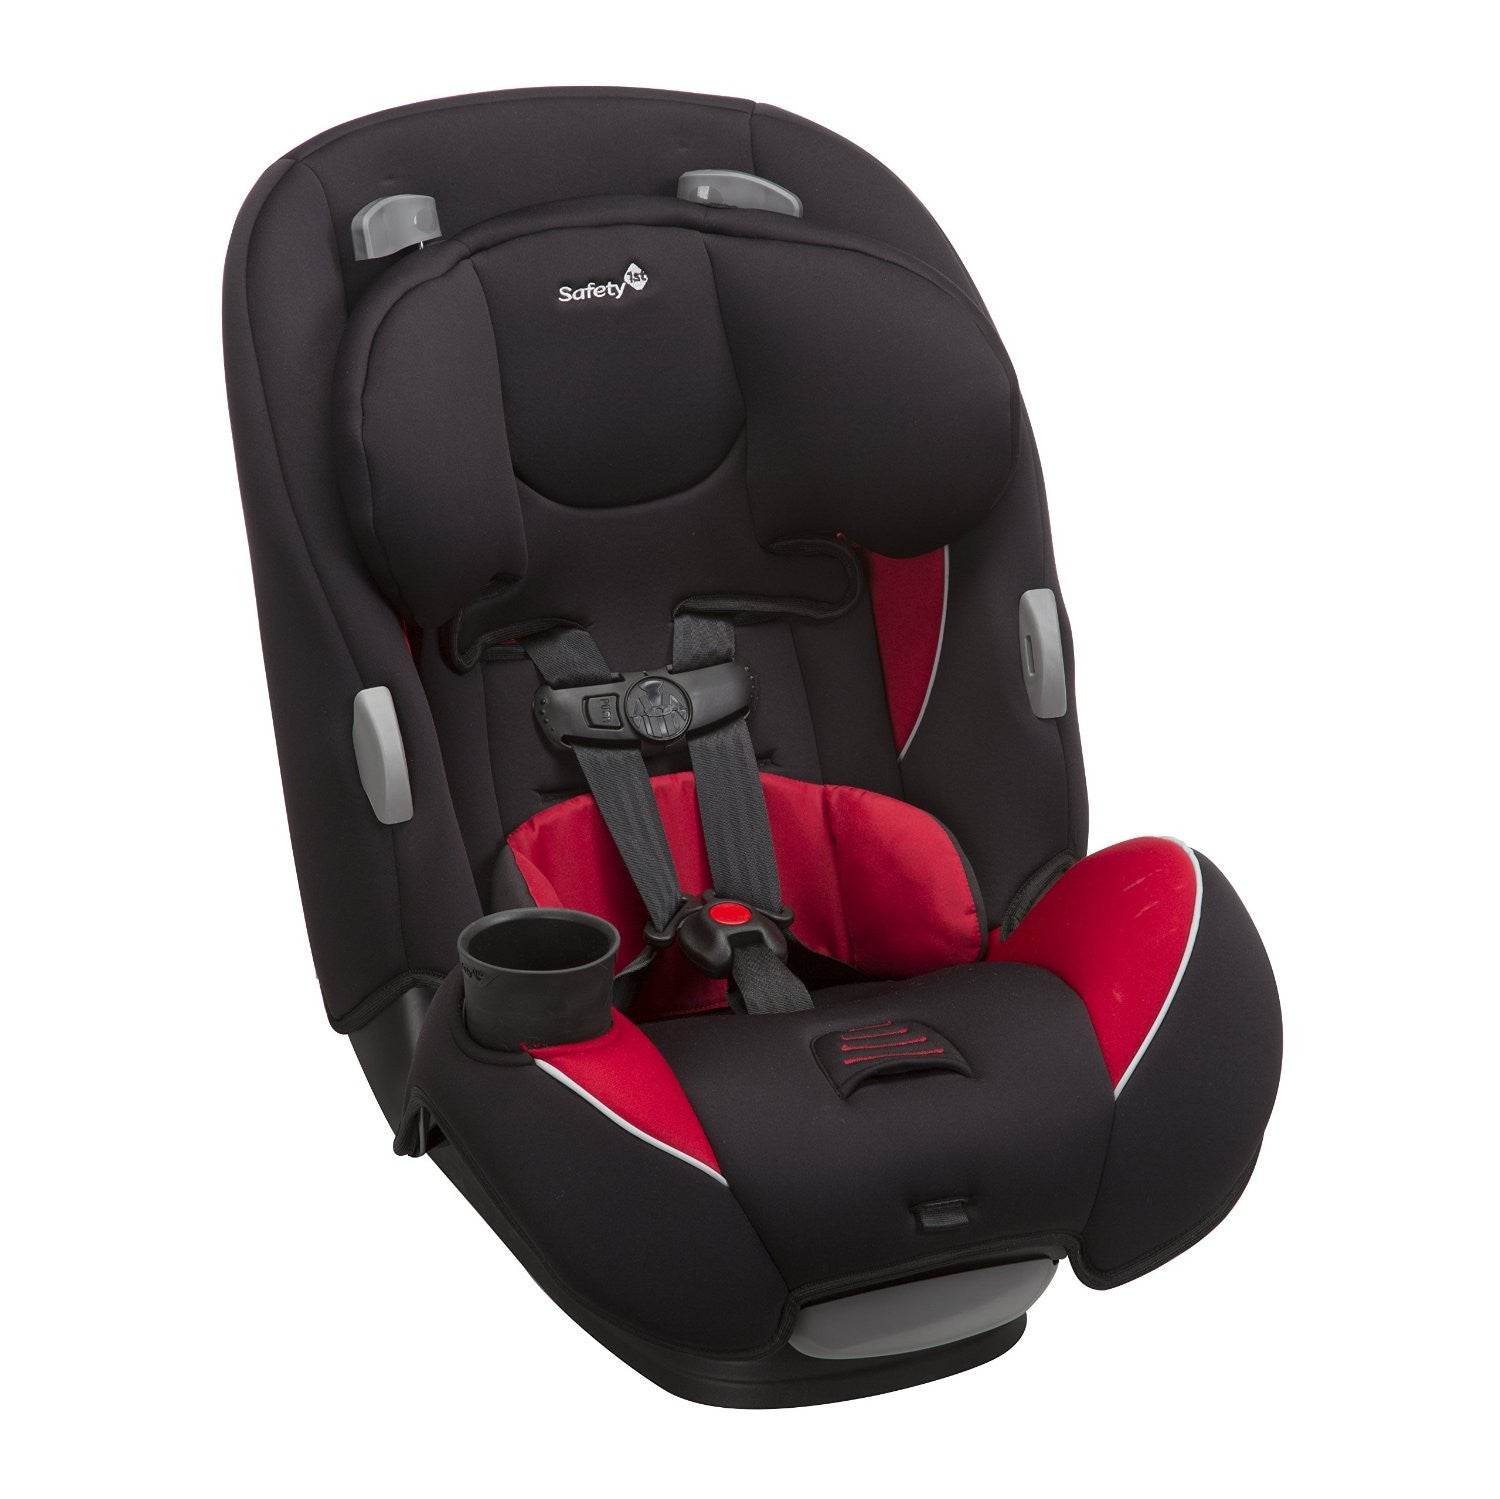 safety 1st rear facing car seat safety first car seat alpha omega elite 2077 safety 1st. Black Bedroom Furniture Sets. Home Design Ideas